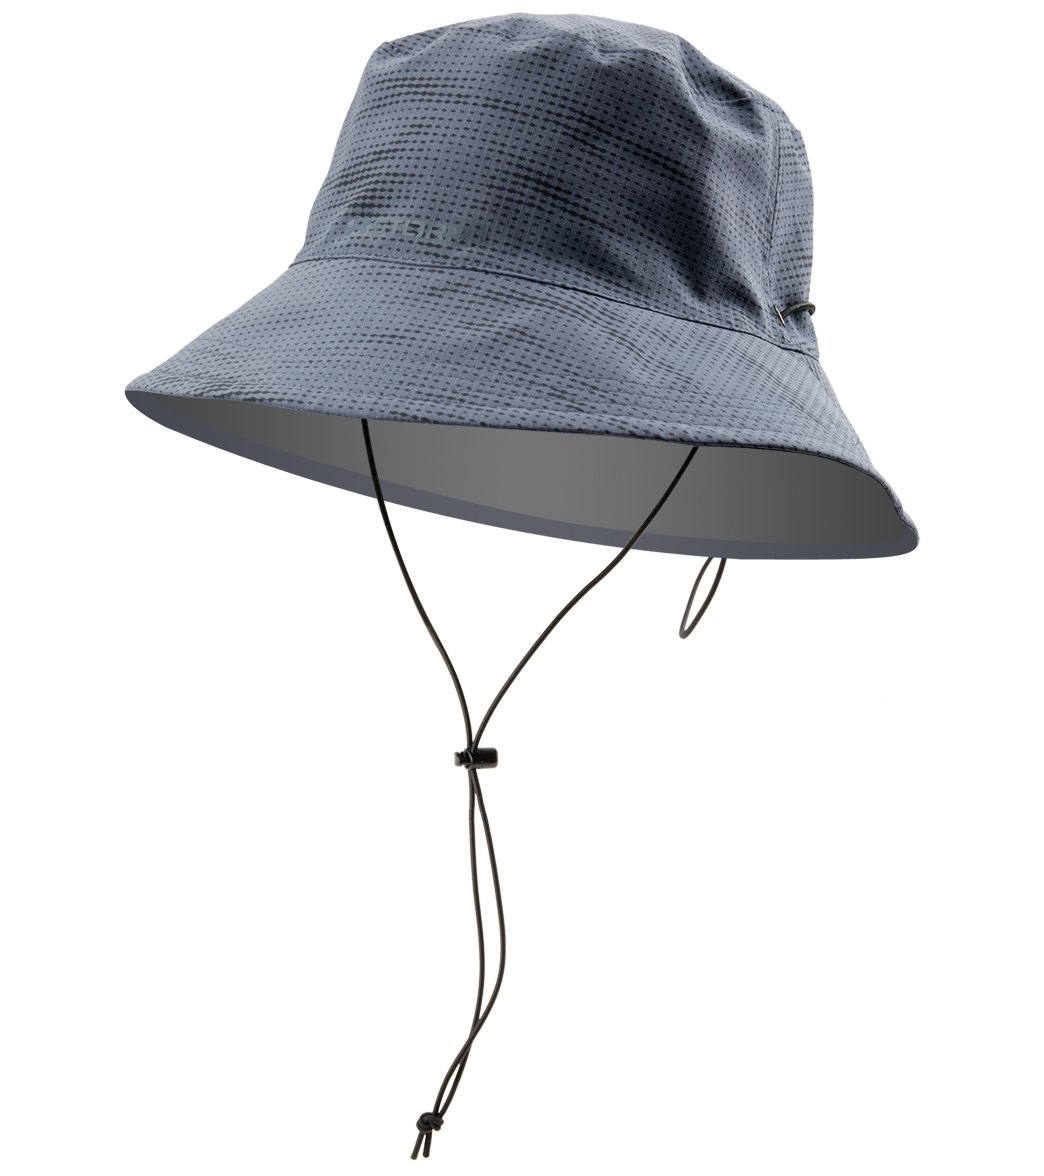 Under Armour Men s Switchback 2.0 Bucket Hat at SwimOutlet.com 8b9e2d8ec2b3